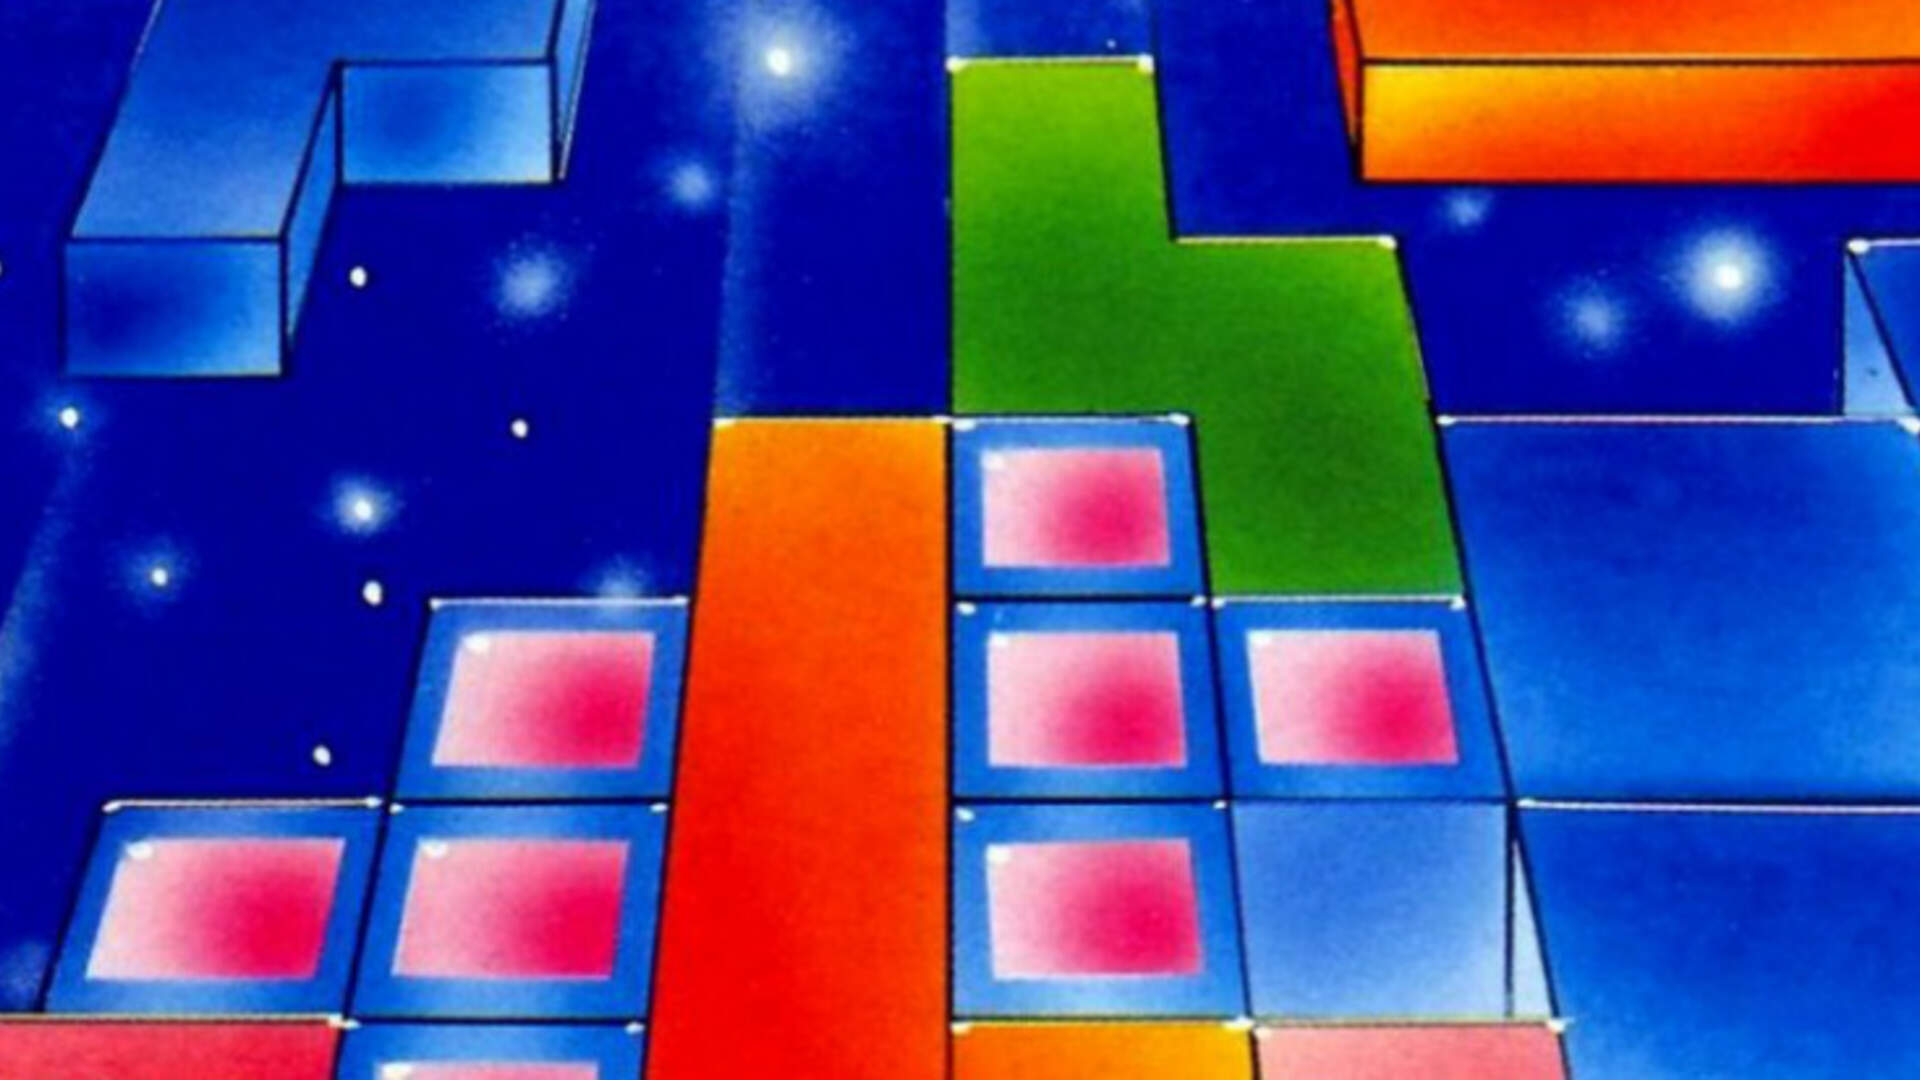 Tetris is Coming to Xbox One and PS4